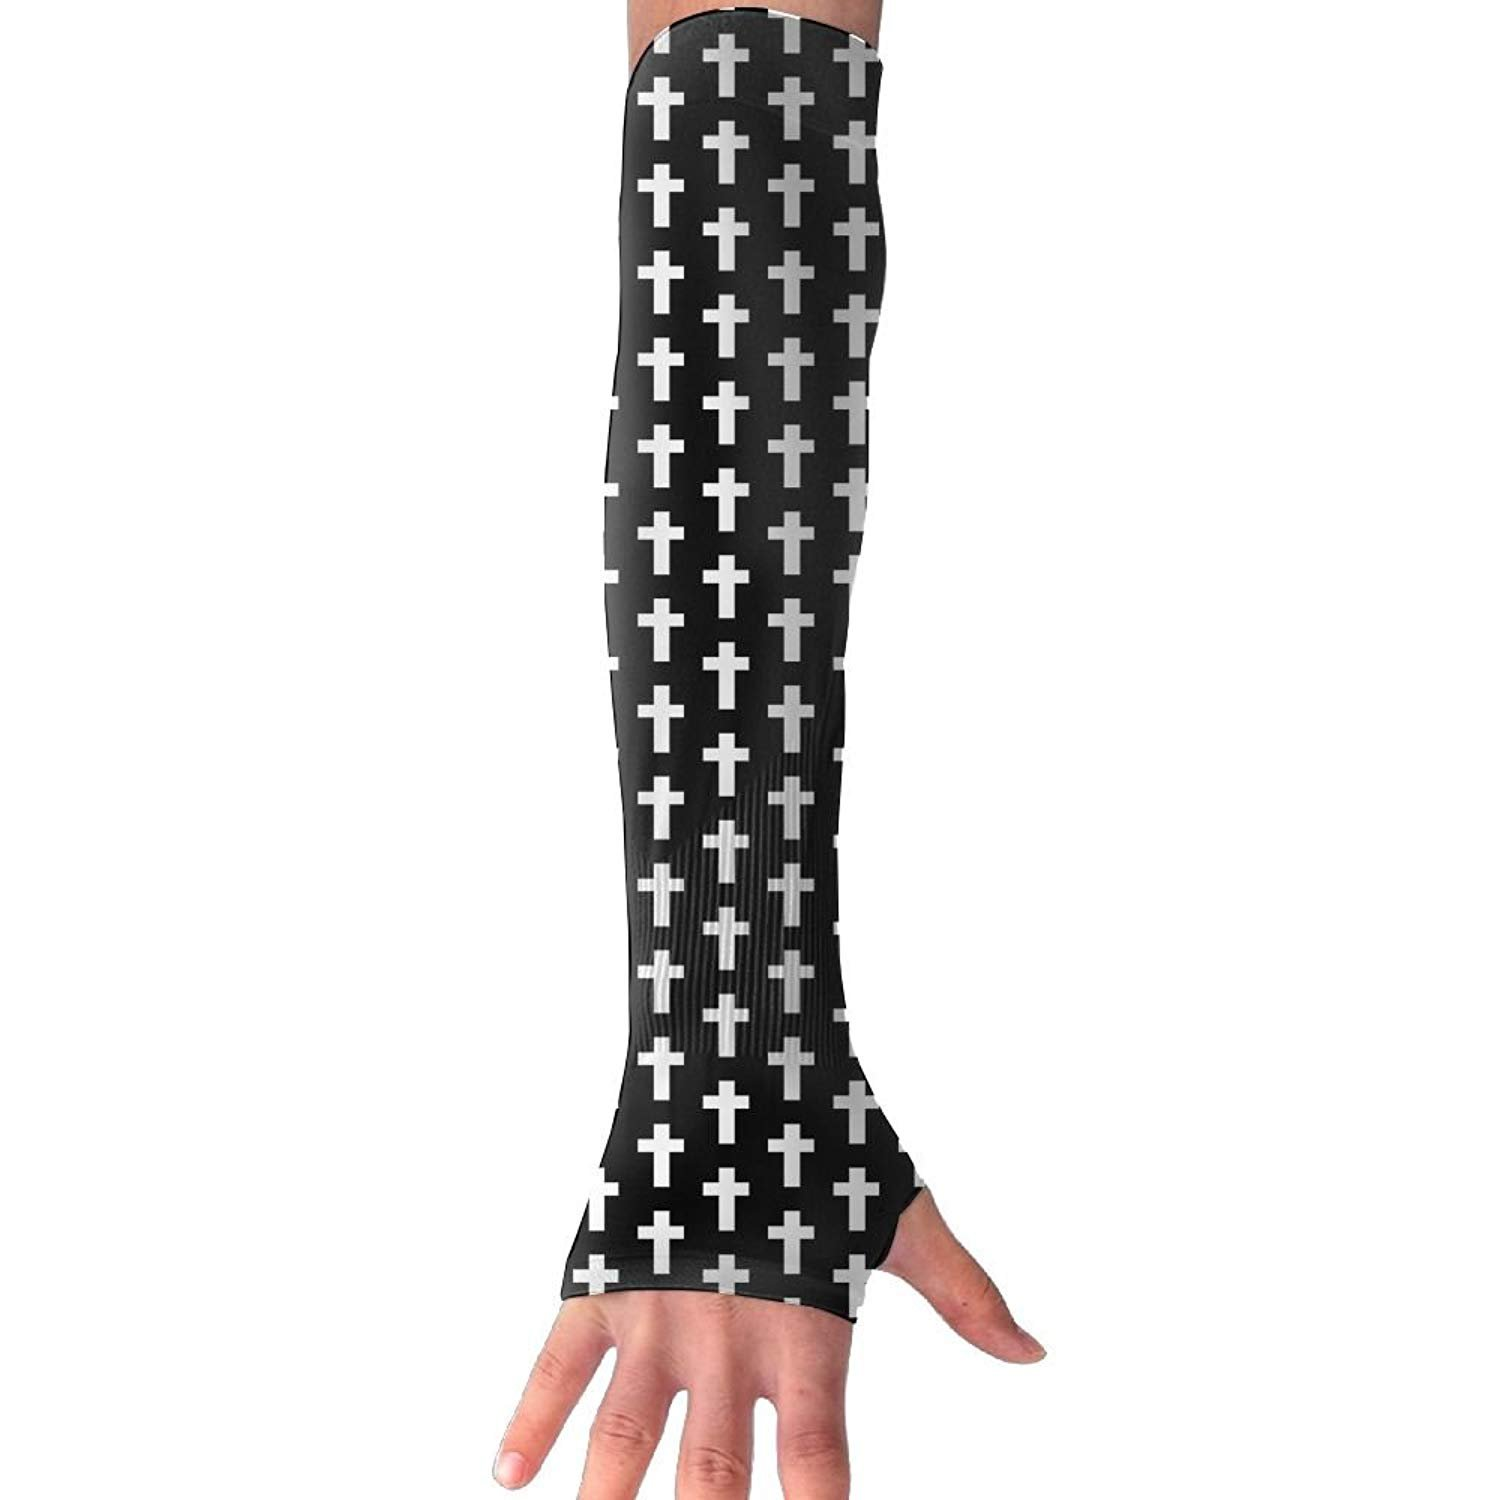 Unisex Love of The Cross Sunscreen Outdoor Travel Arm Warmer Long Sleeves Glove